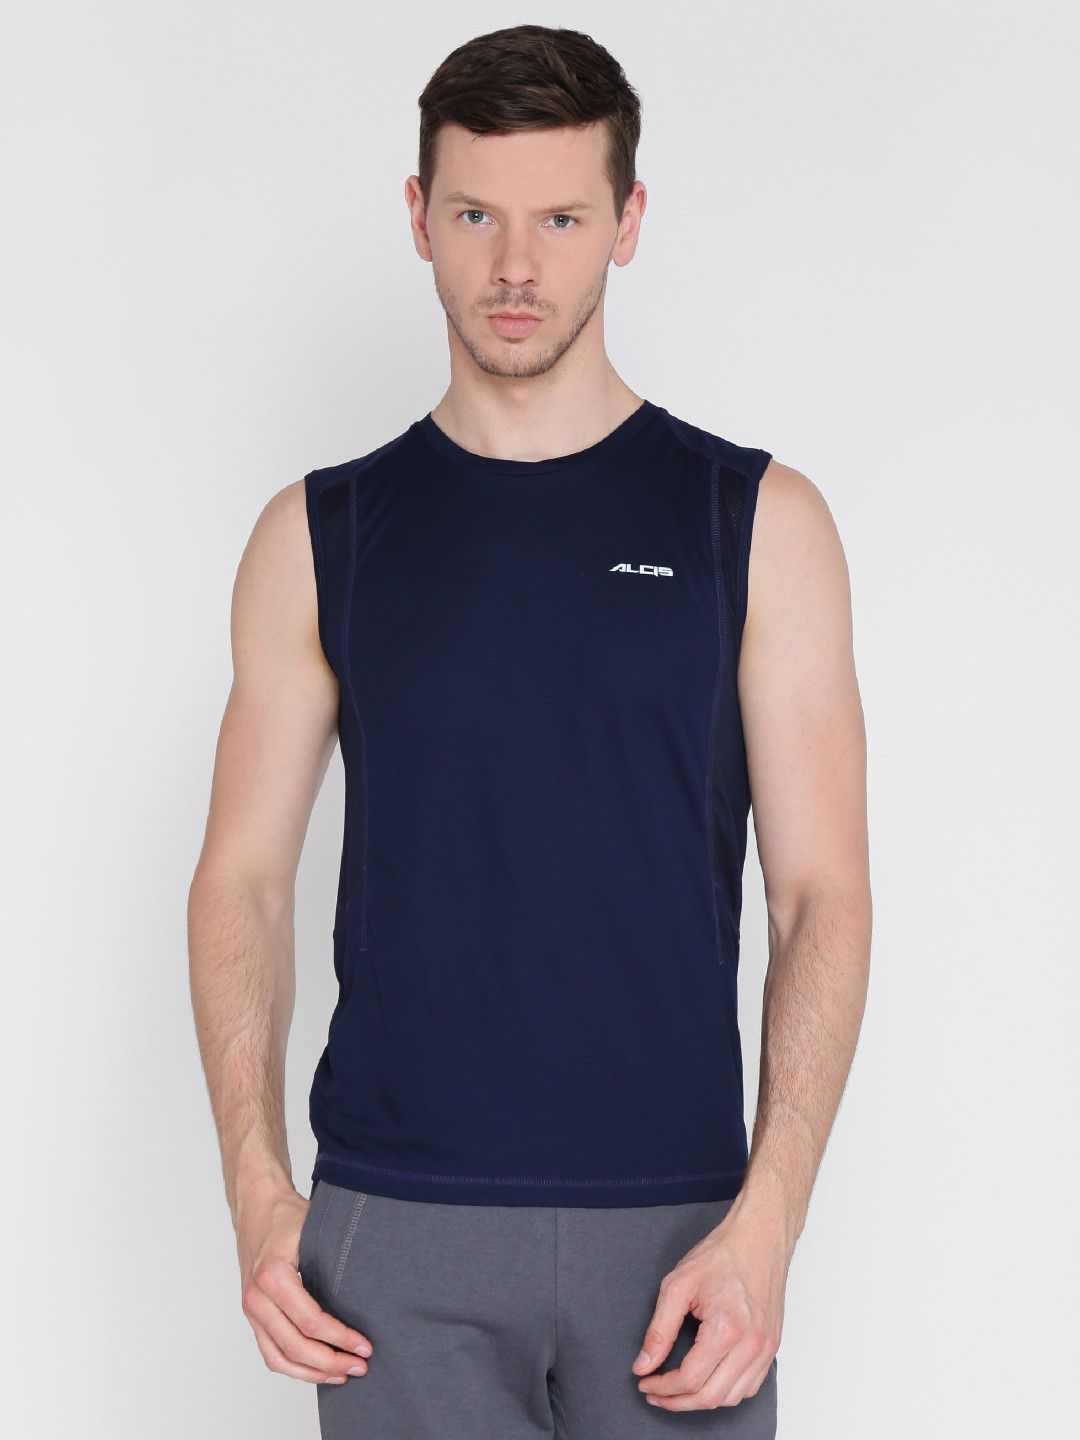 Alcis Mens Solid Navy Blue Running T-Shirt